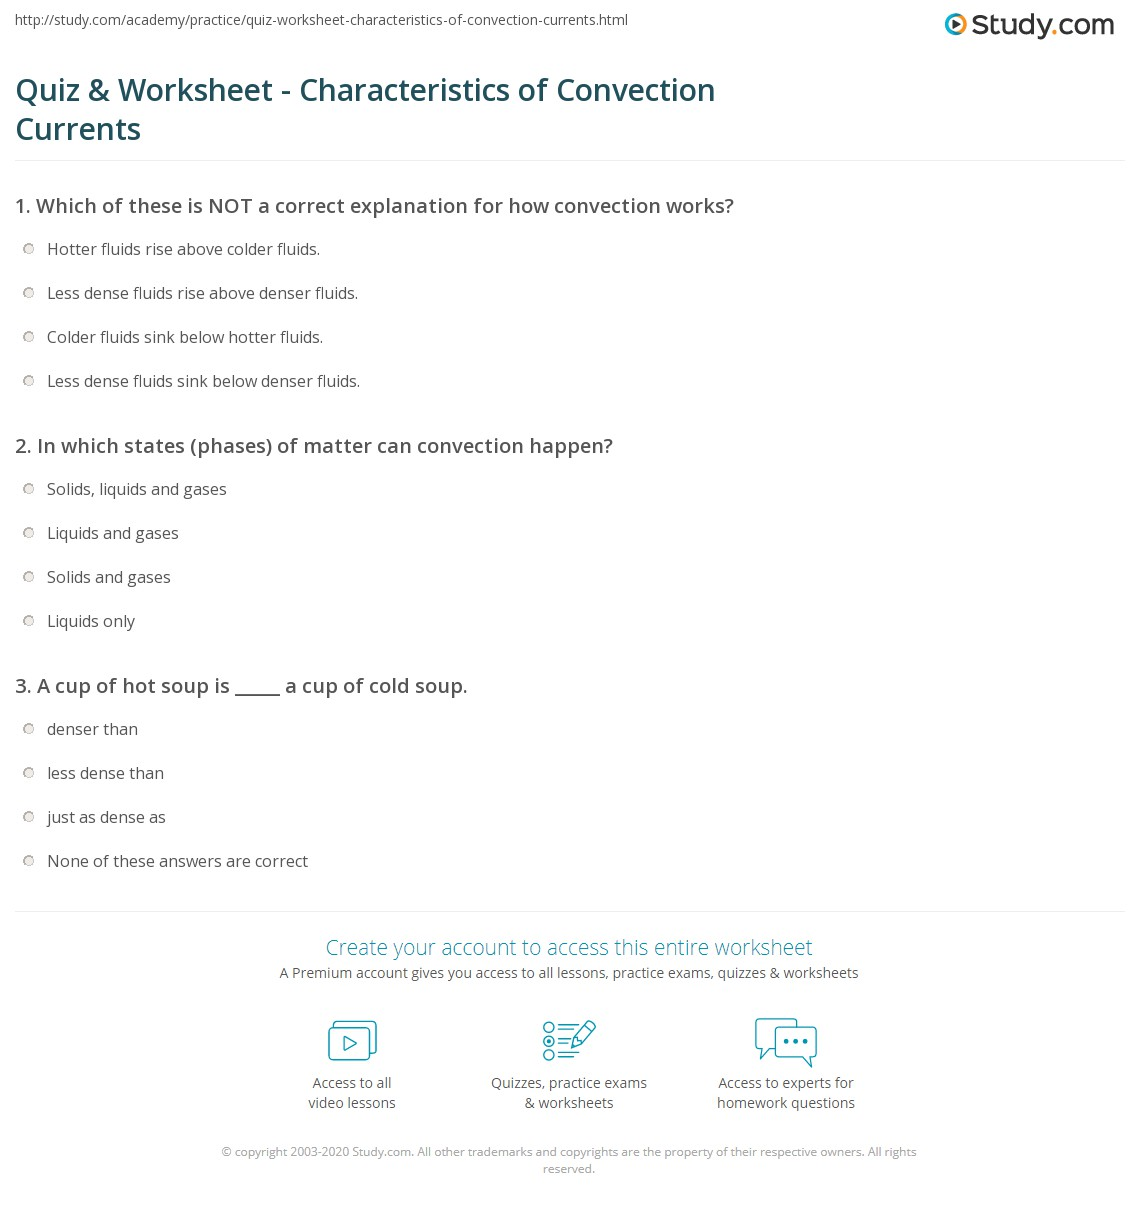 Quiz & Worksheet - Characteristics of Convection Currents | Study.com